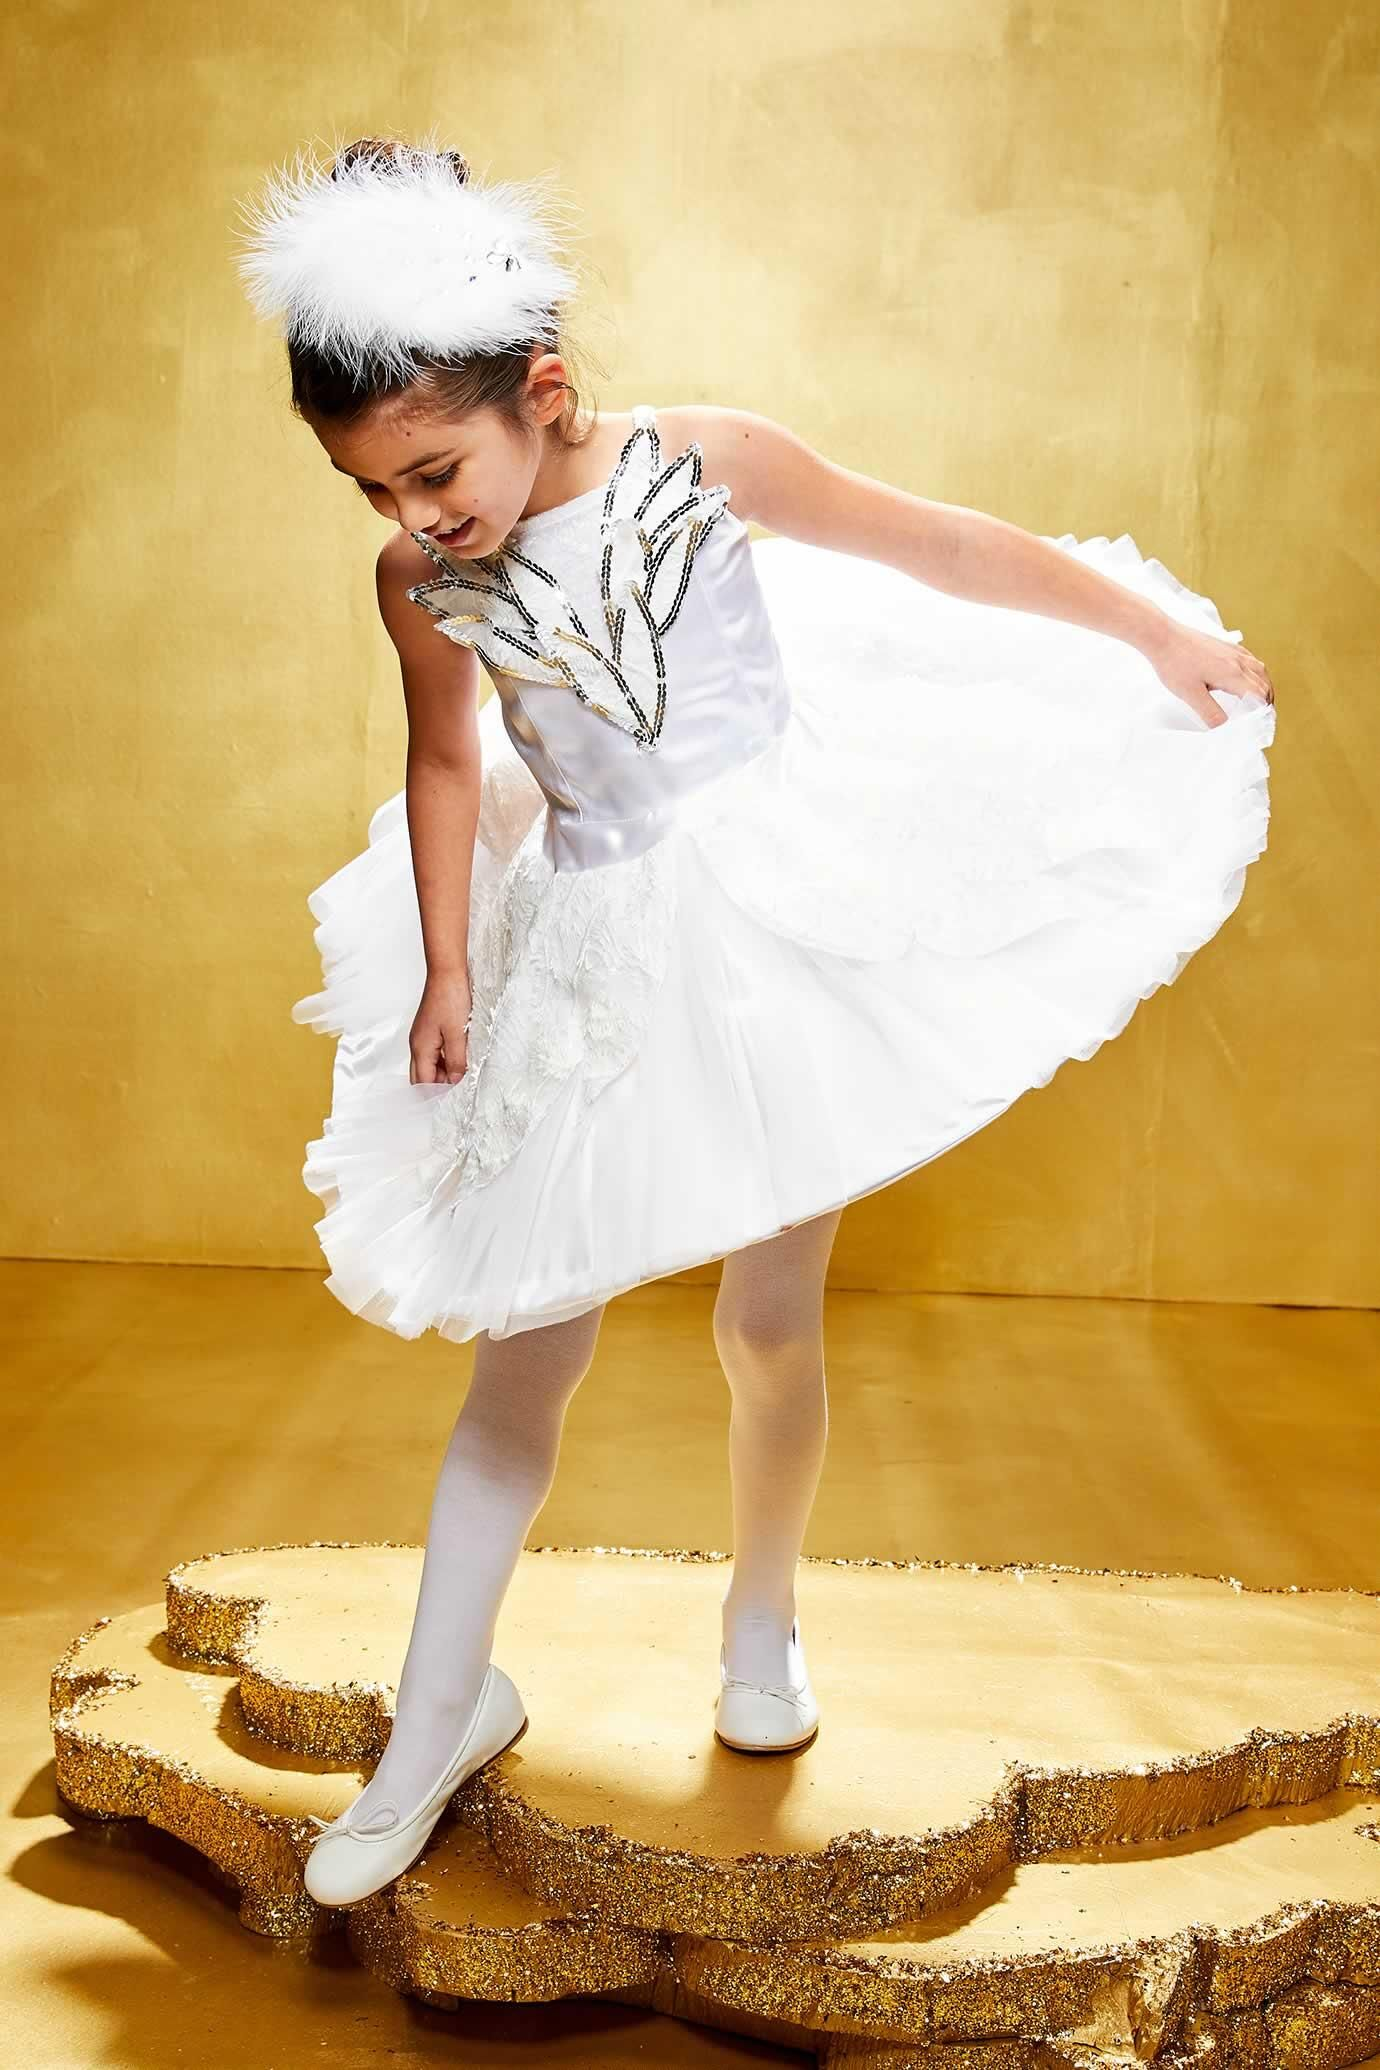 White Swan Ballerina Costume For Girls Chasing Fireflies